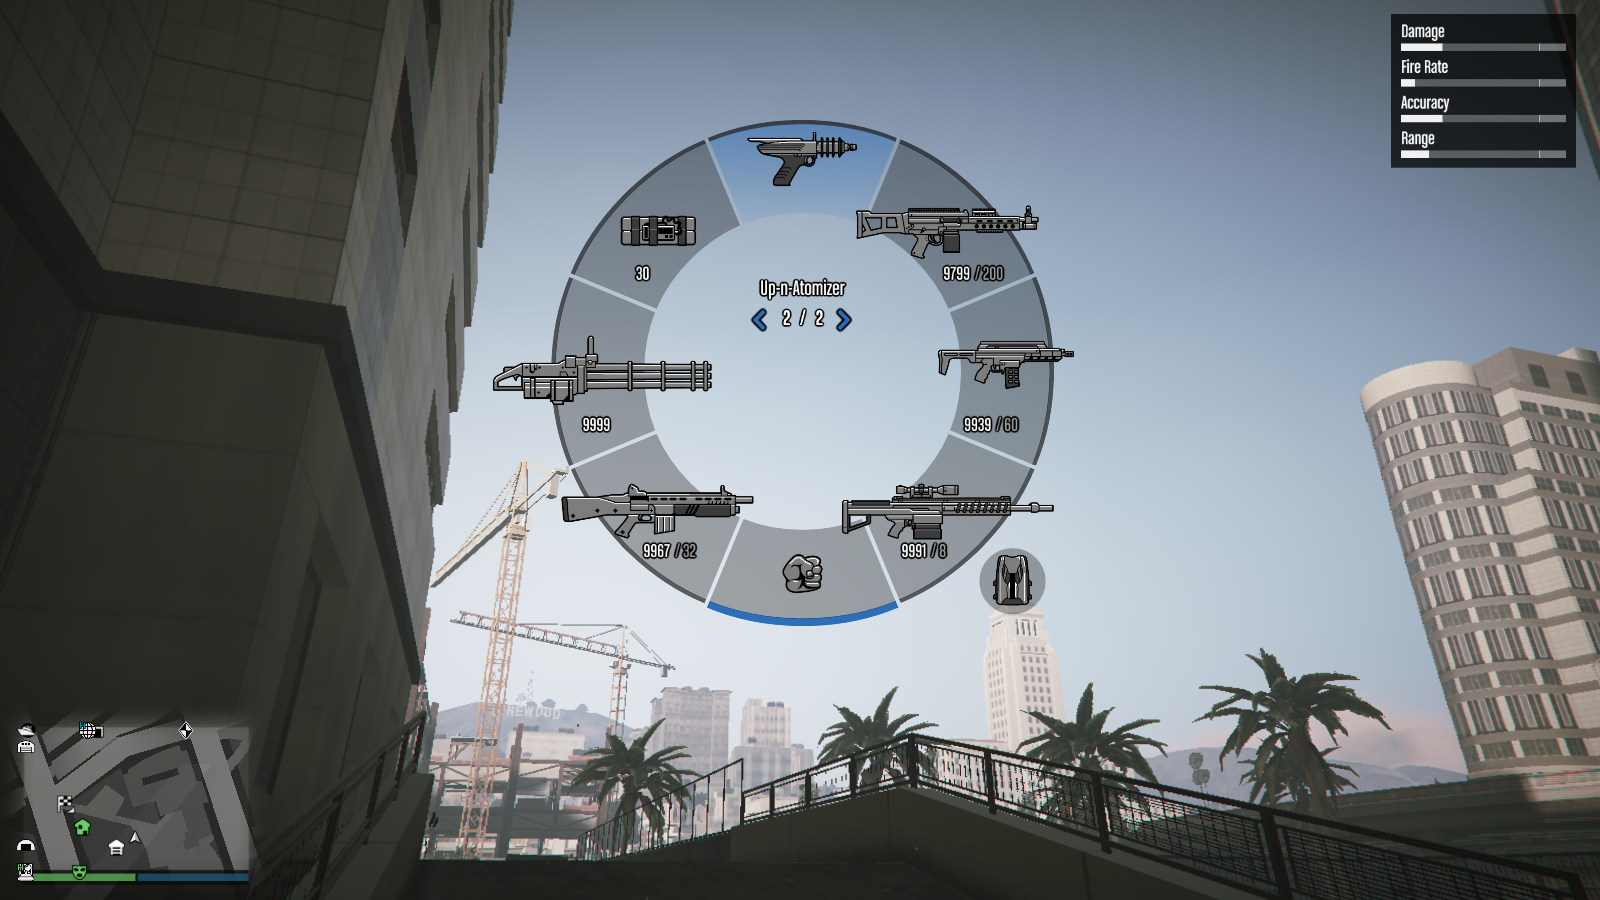 Up-n-Atomizer in Weapon Wheel